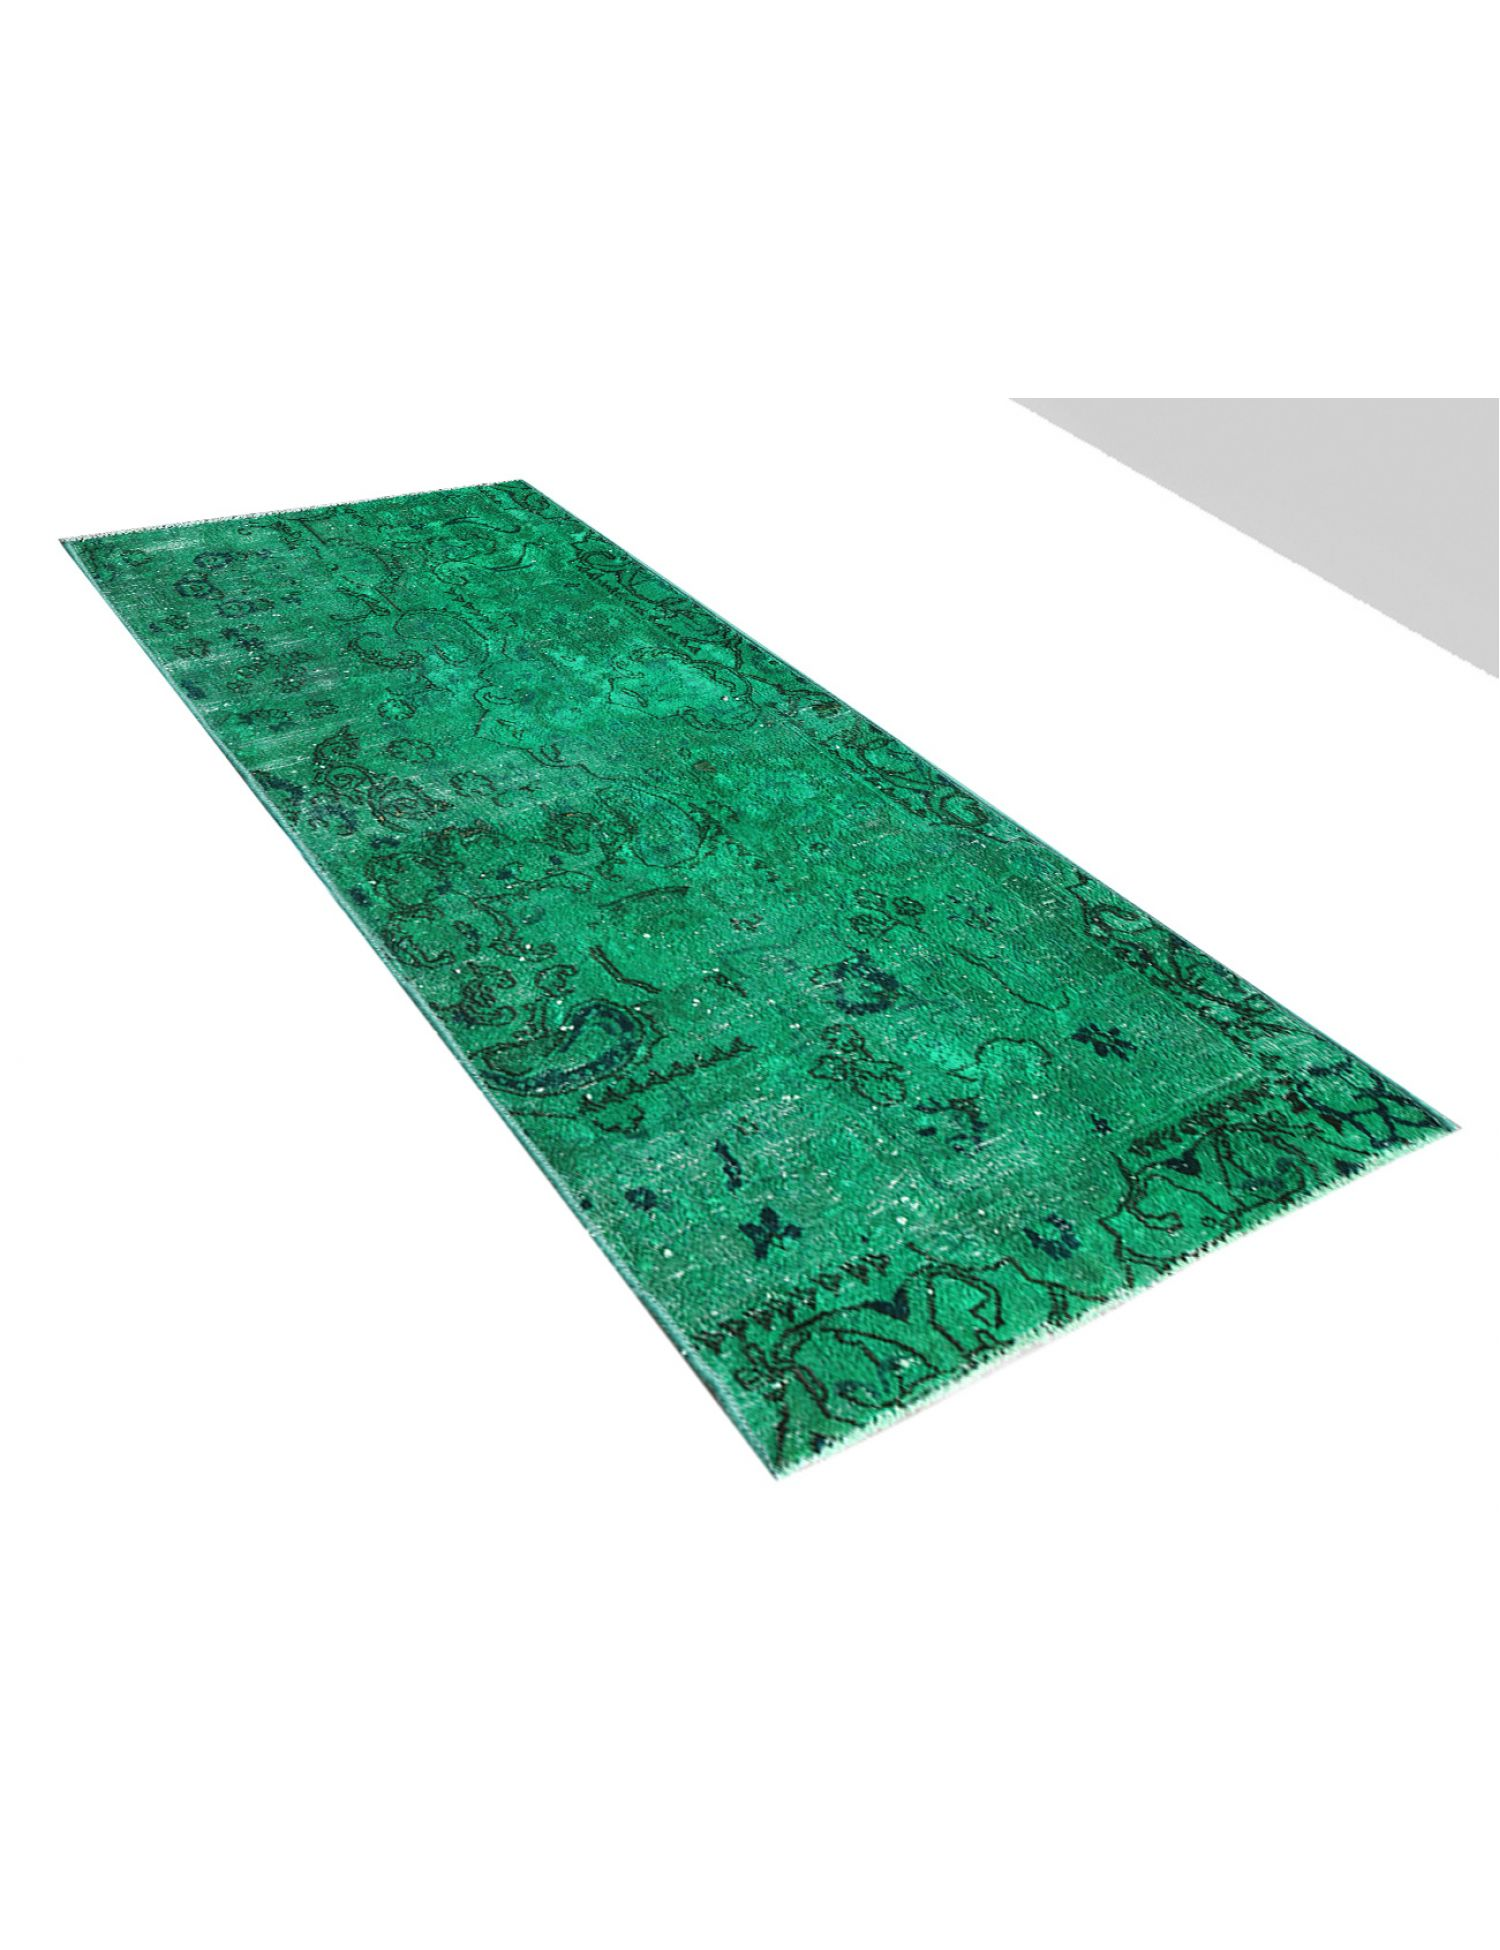 Vintage Carpet  green <br/>156 x 78 cm